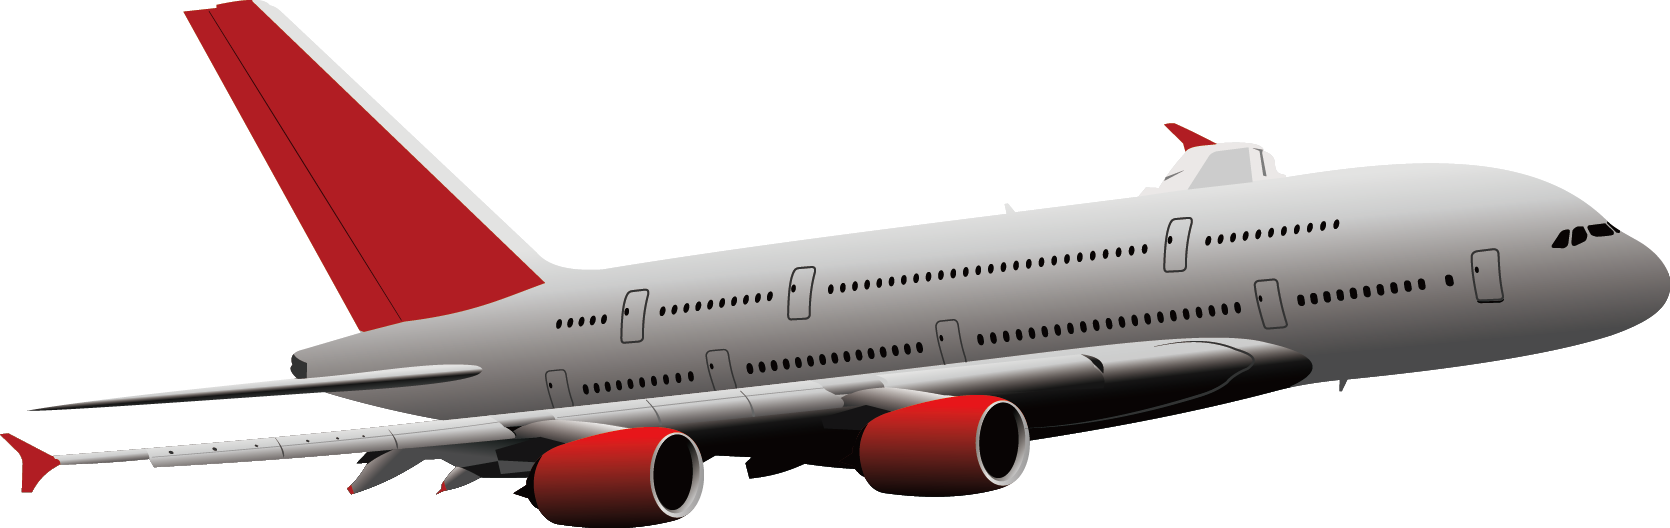 Boeing airplane aircraft flight. Flying clipart a380 airbus